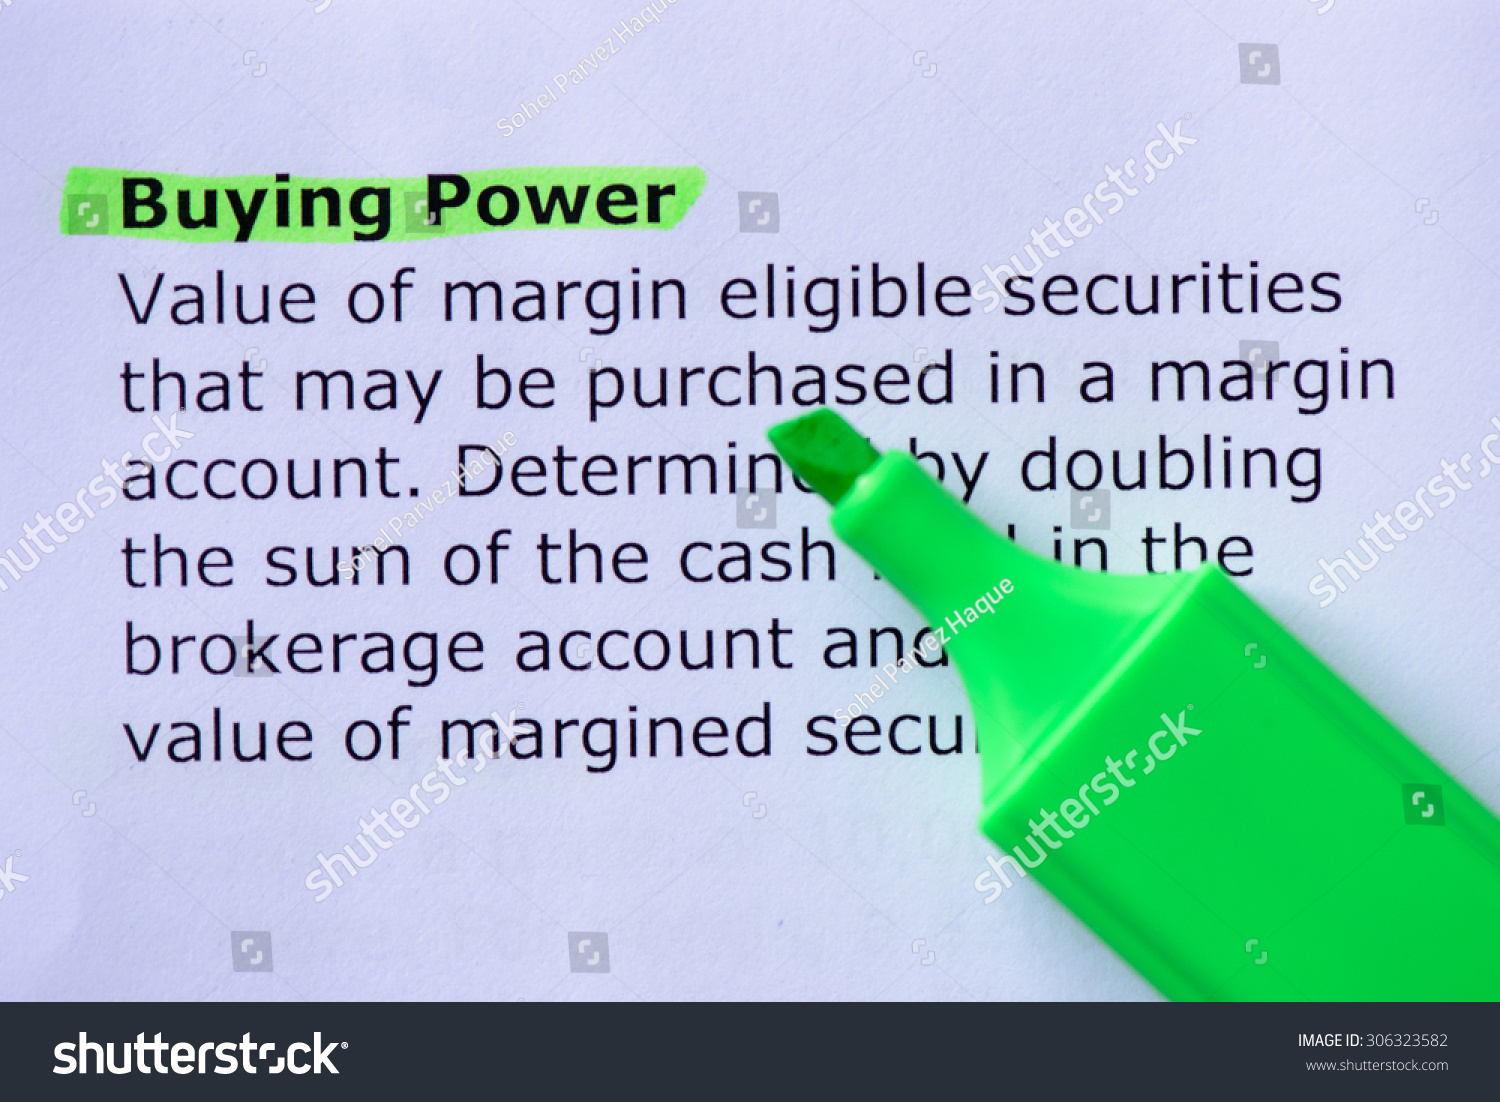 What is 'Buying Power'